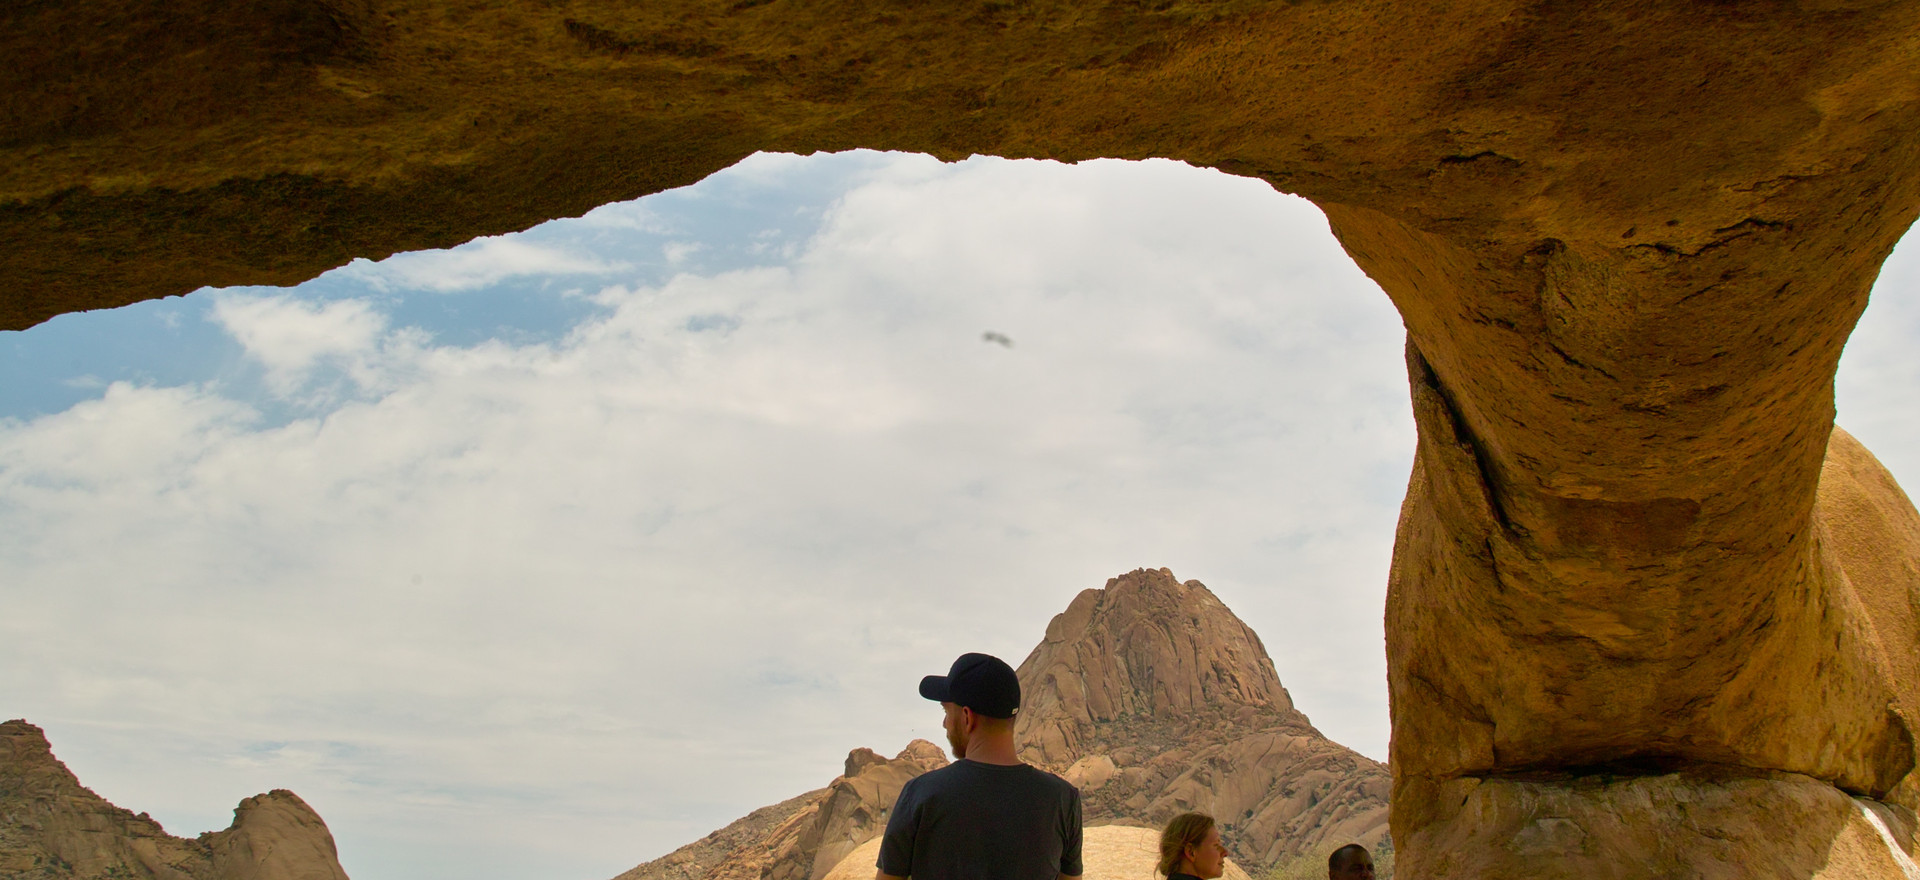 The rock arch at Spitzkoppe